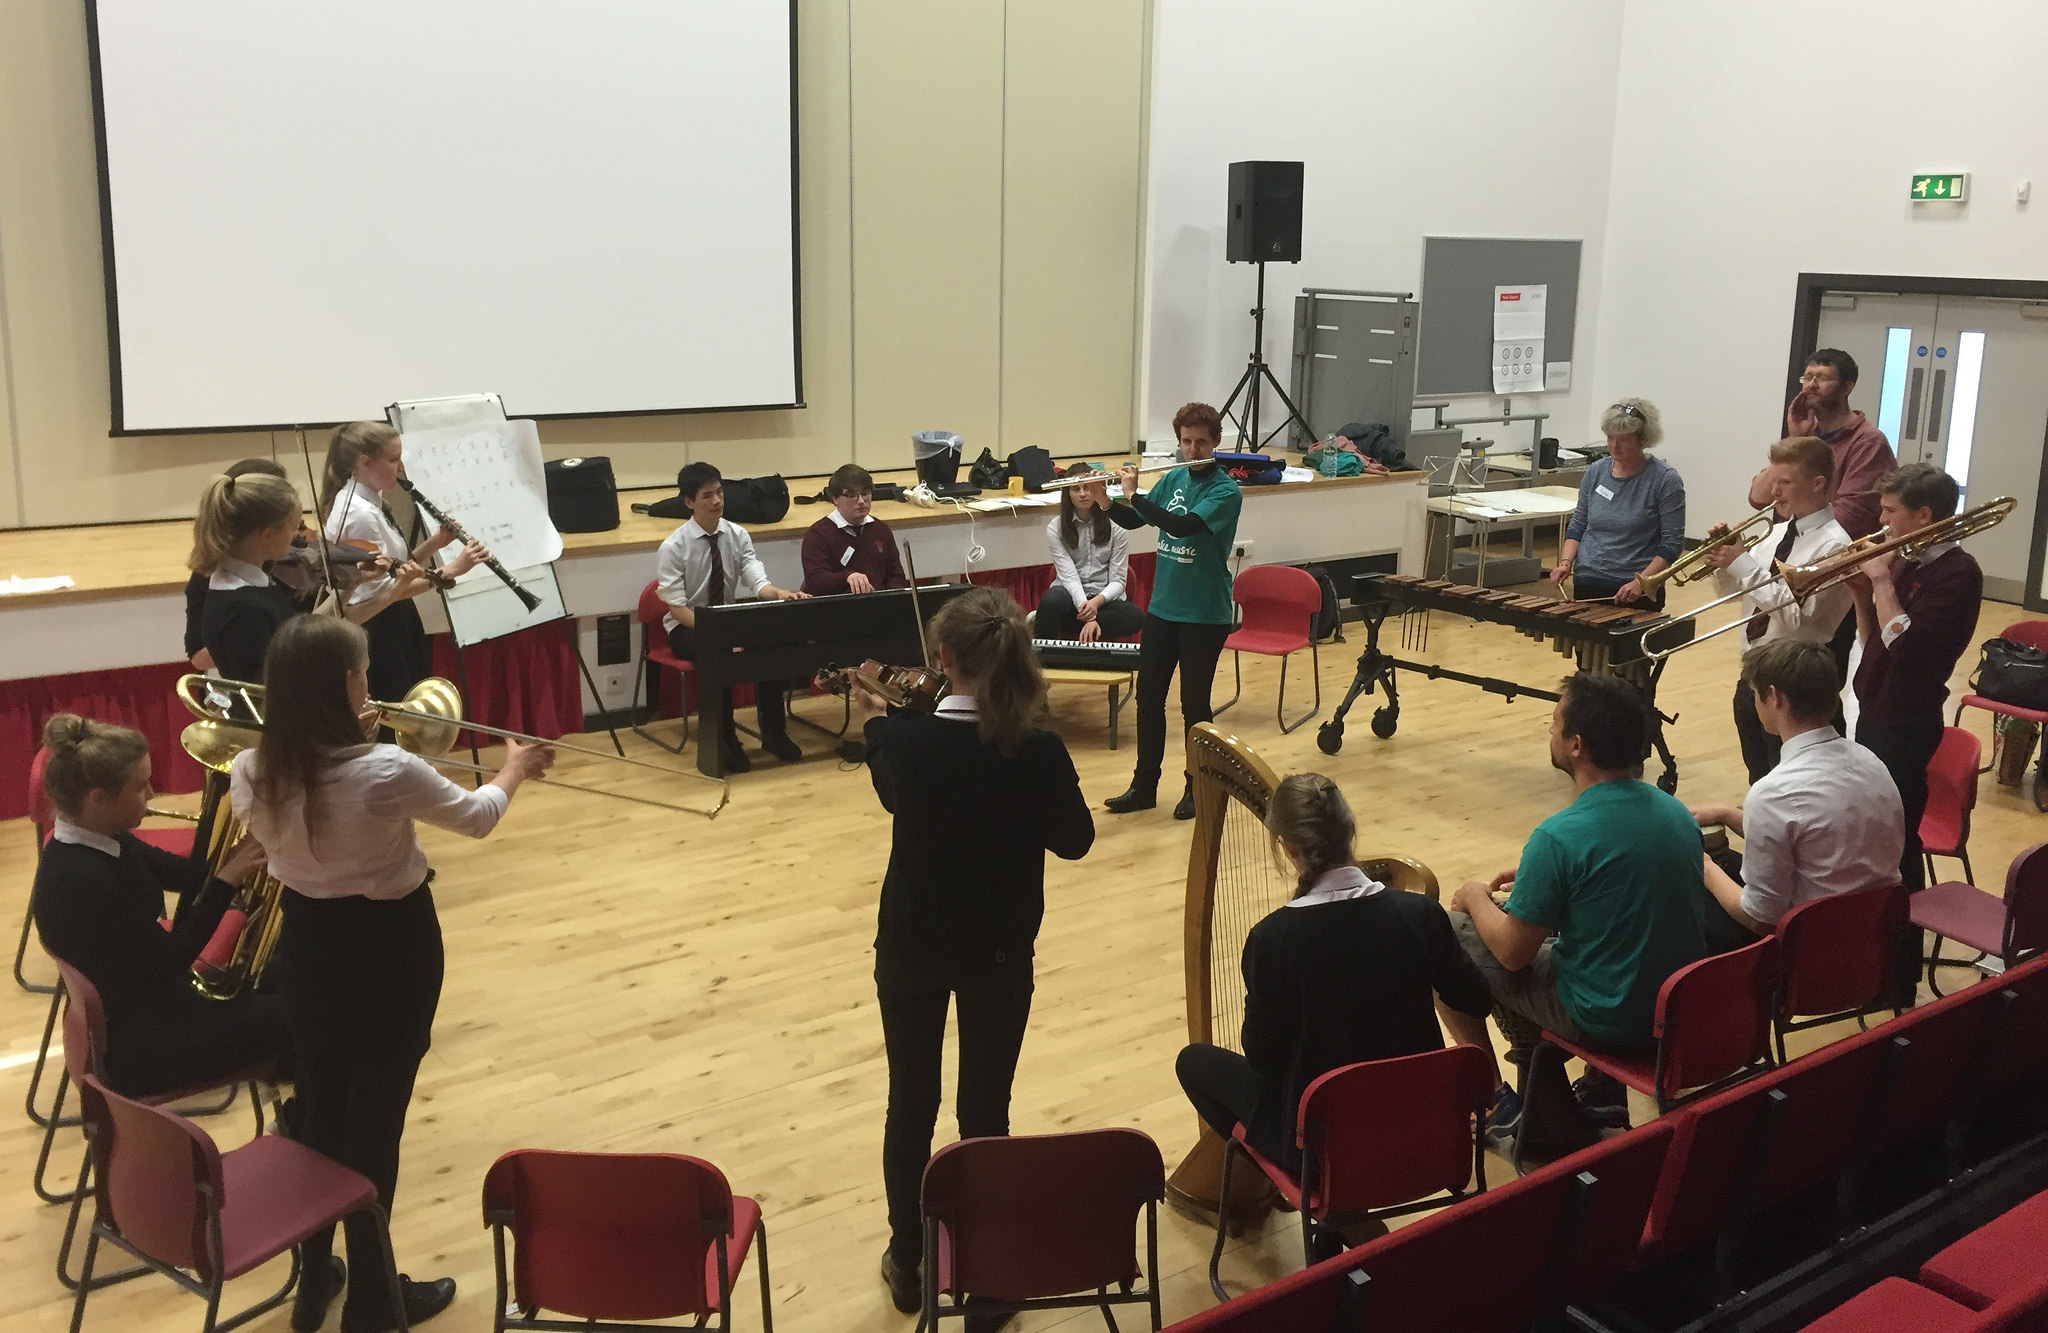 The Scottish Chamber Orchestra brings Masterworks to Borders schools